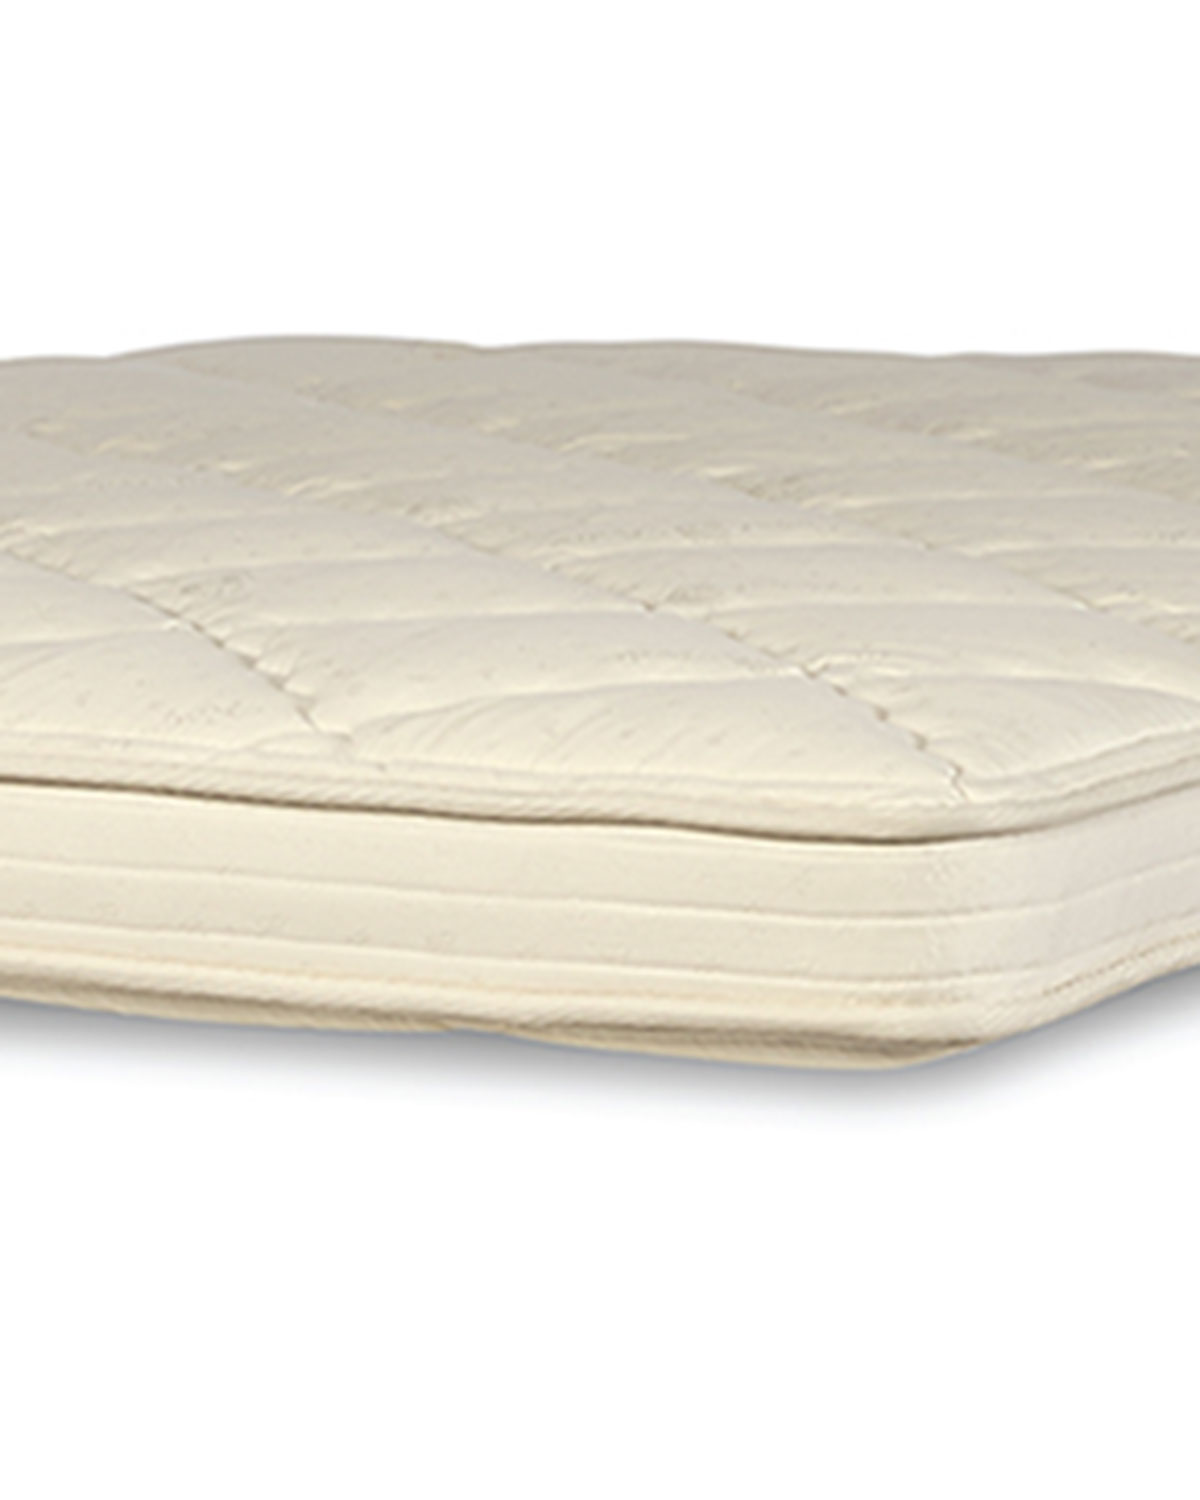 Royal-Pedic Dream Spring Deluxe Pillow Top Pad - Full